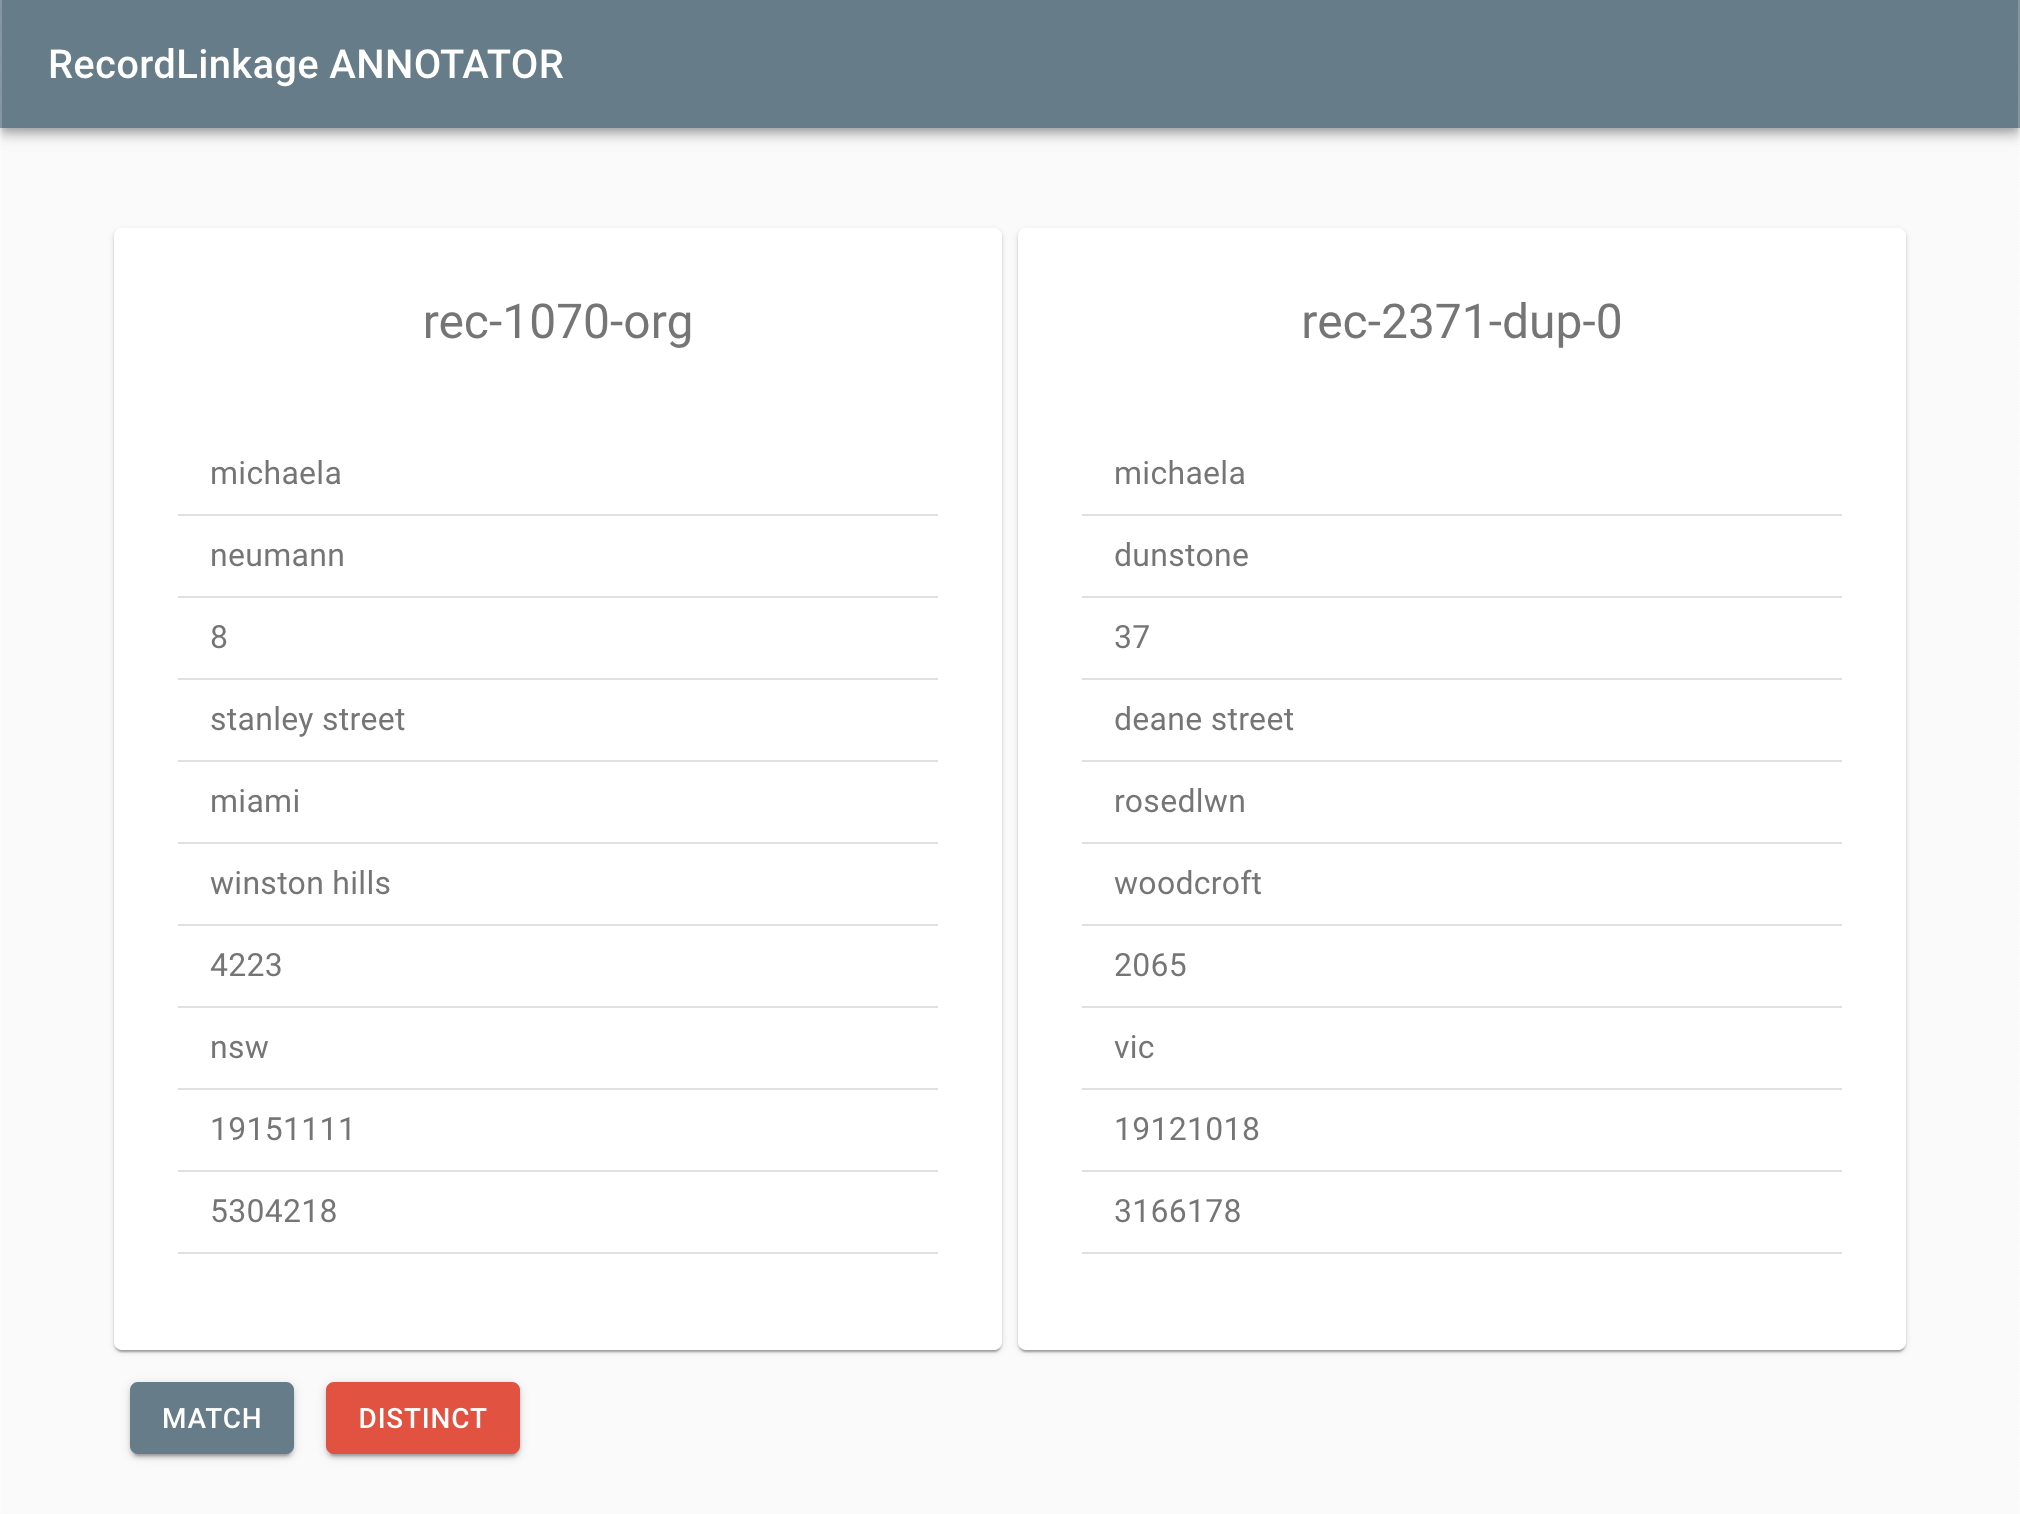 Review screen of RecordLinkage ANNOTATOR